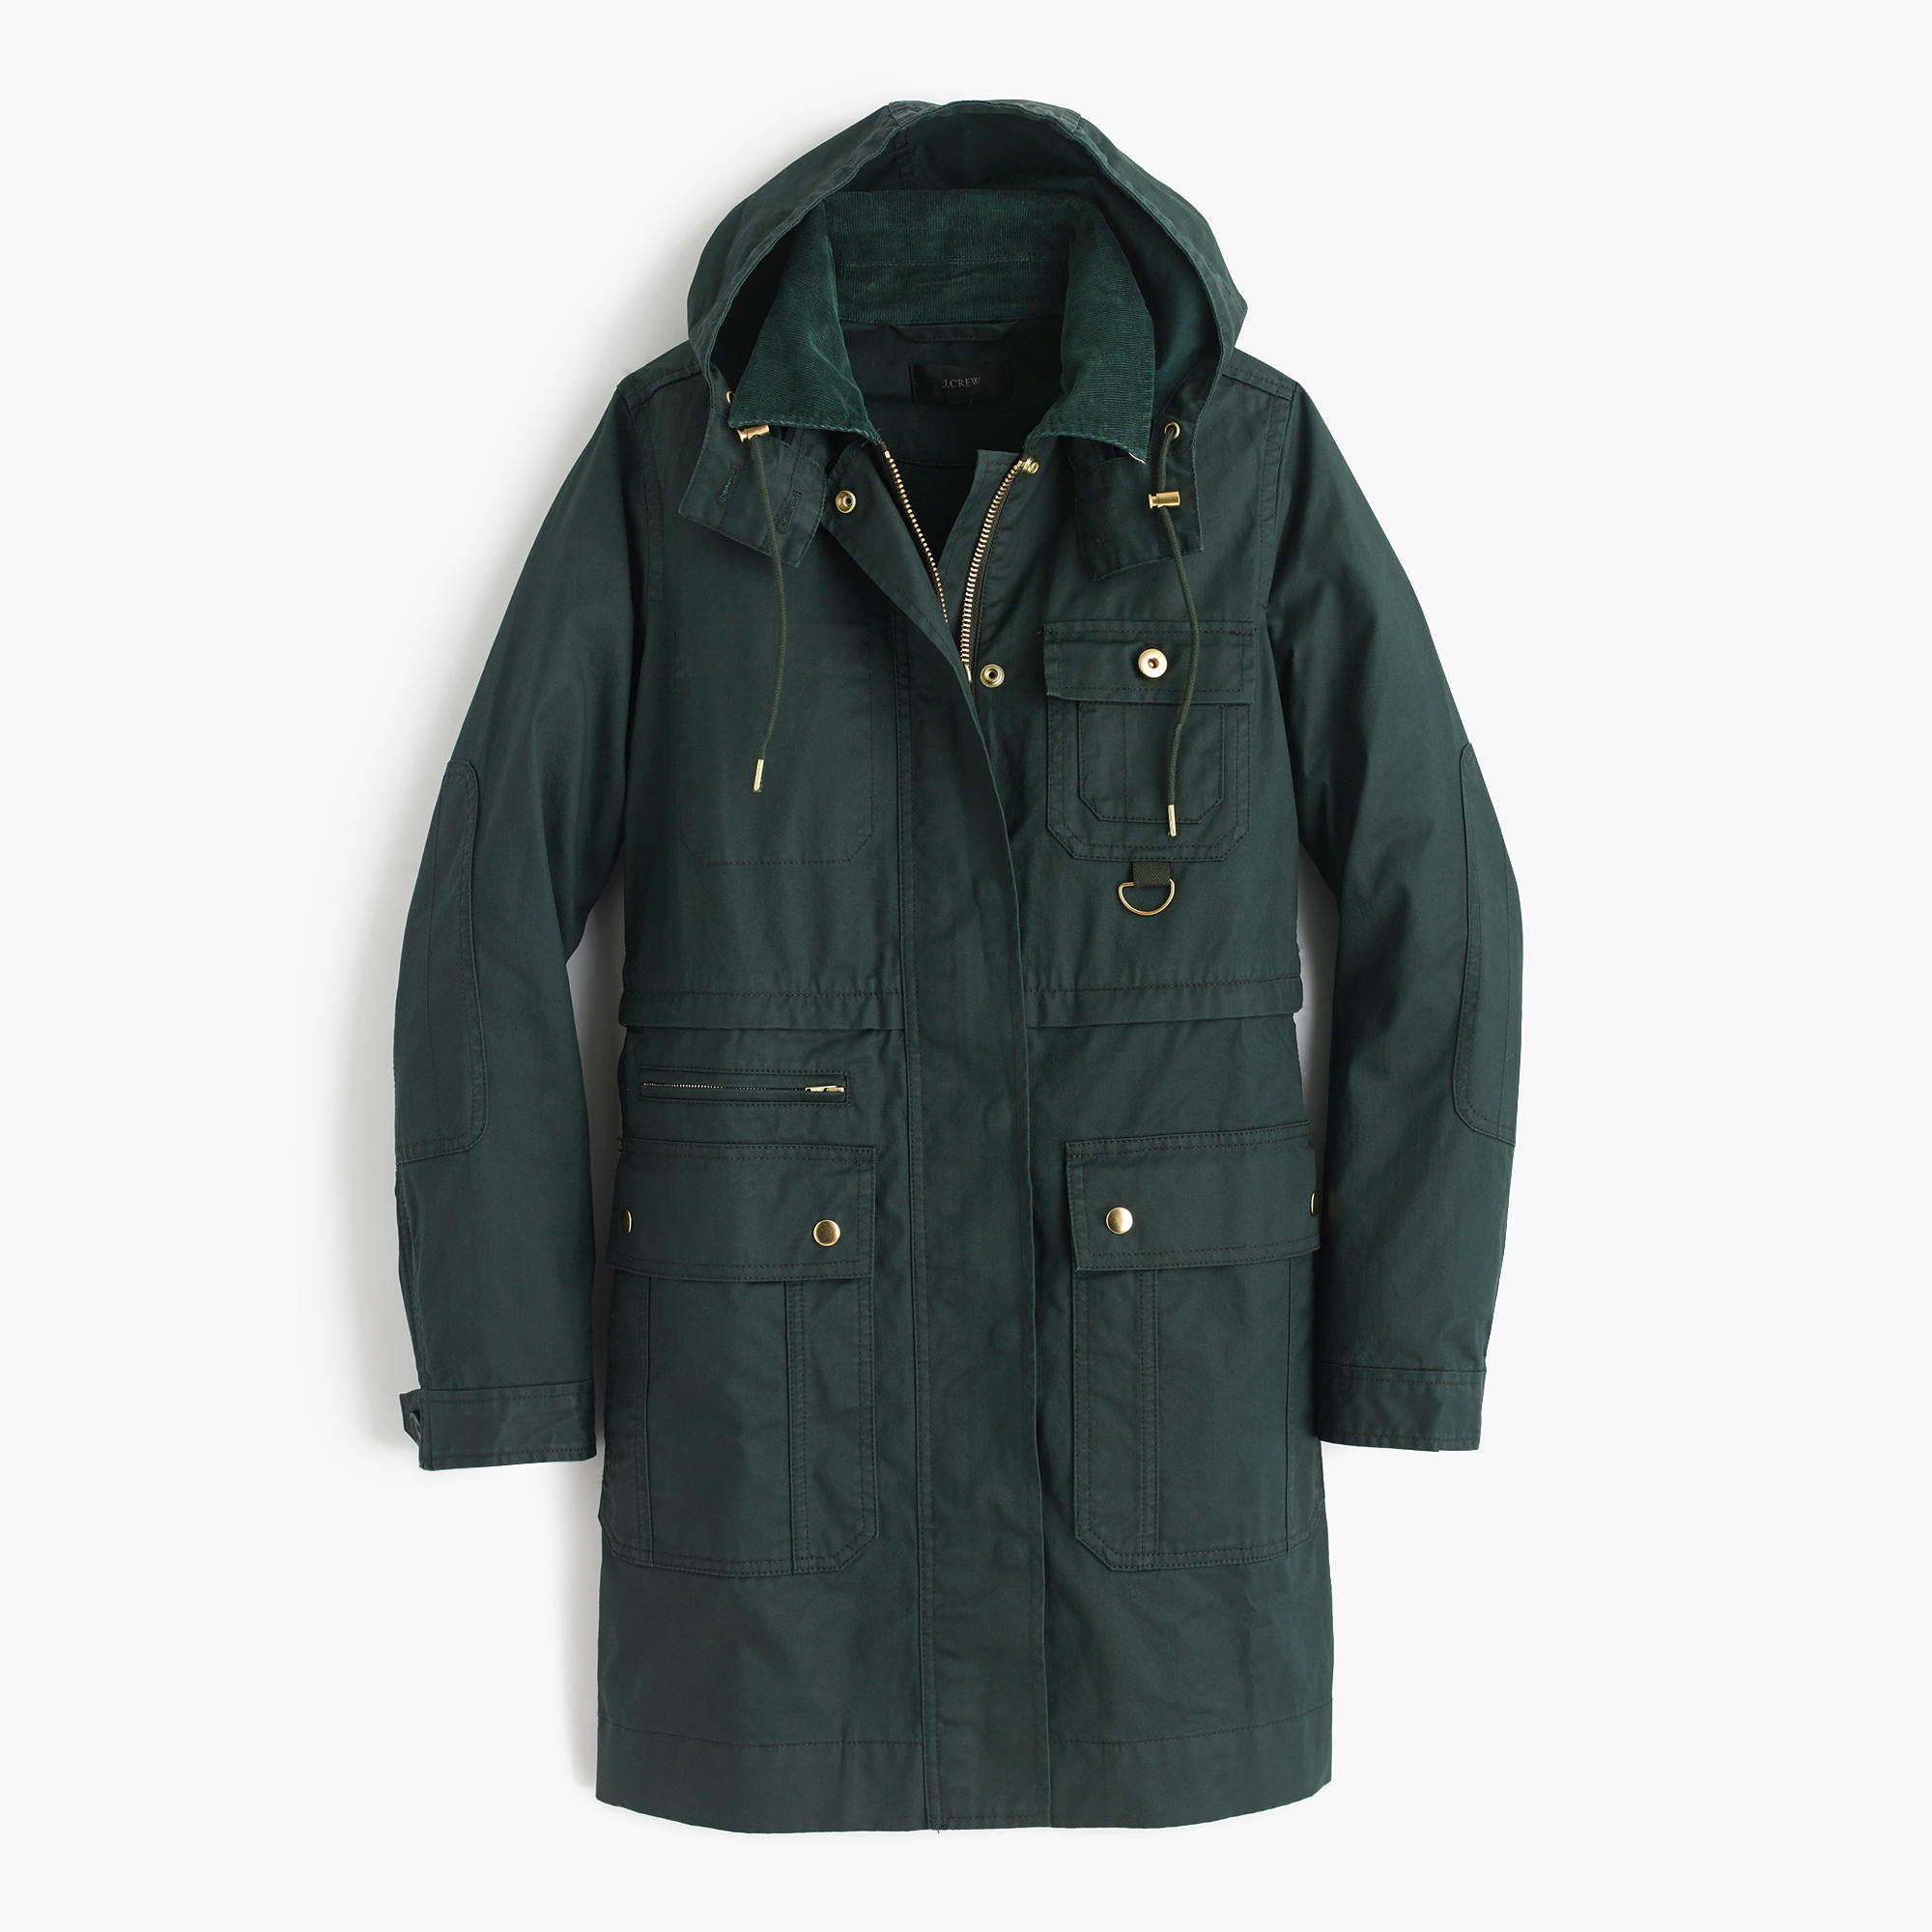 Field jacket for women